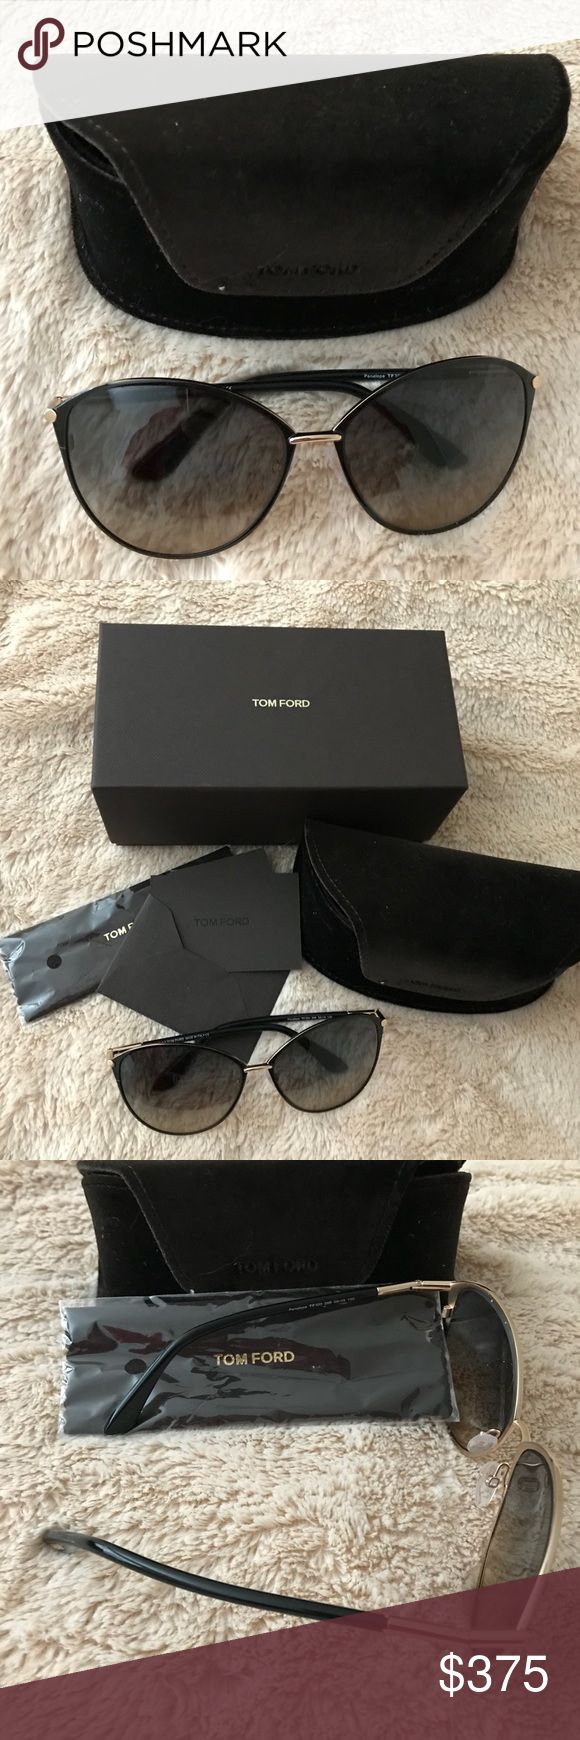 Tom Ford sunglasses.  NWOT Tom Ford PENELOPE AVIATOR SUNGLASSES.  Brand new never worn. Includes box, protective case and new cleaning cloth. Tom Ford Accessories Sunglasses